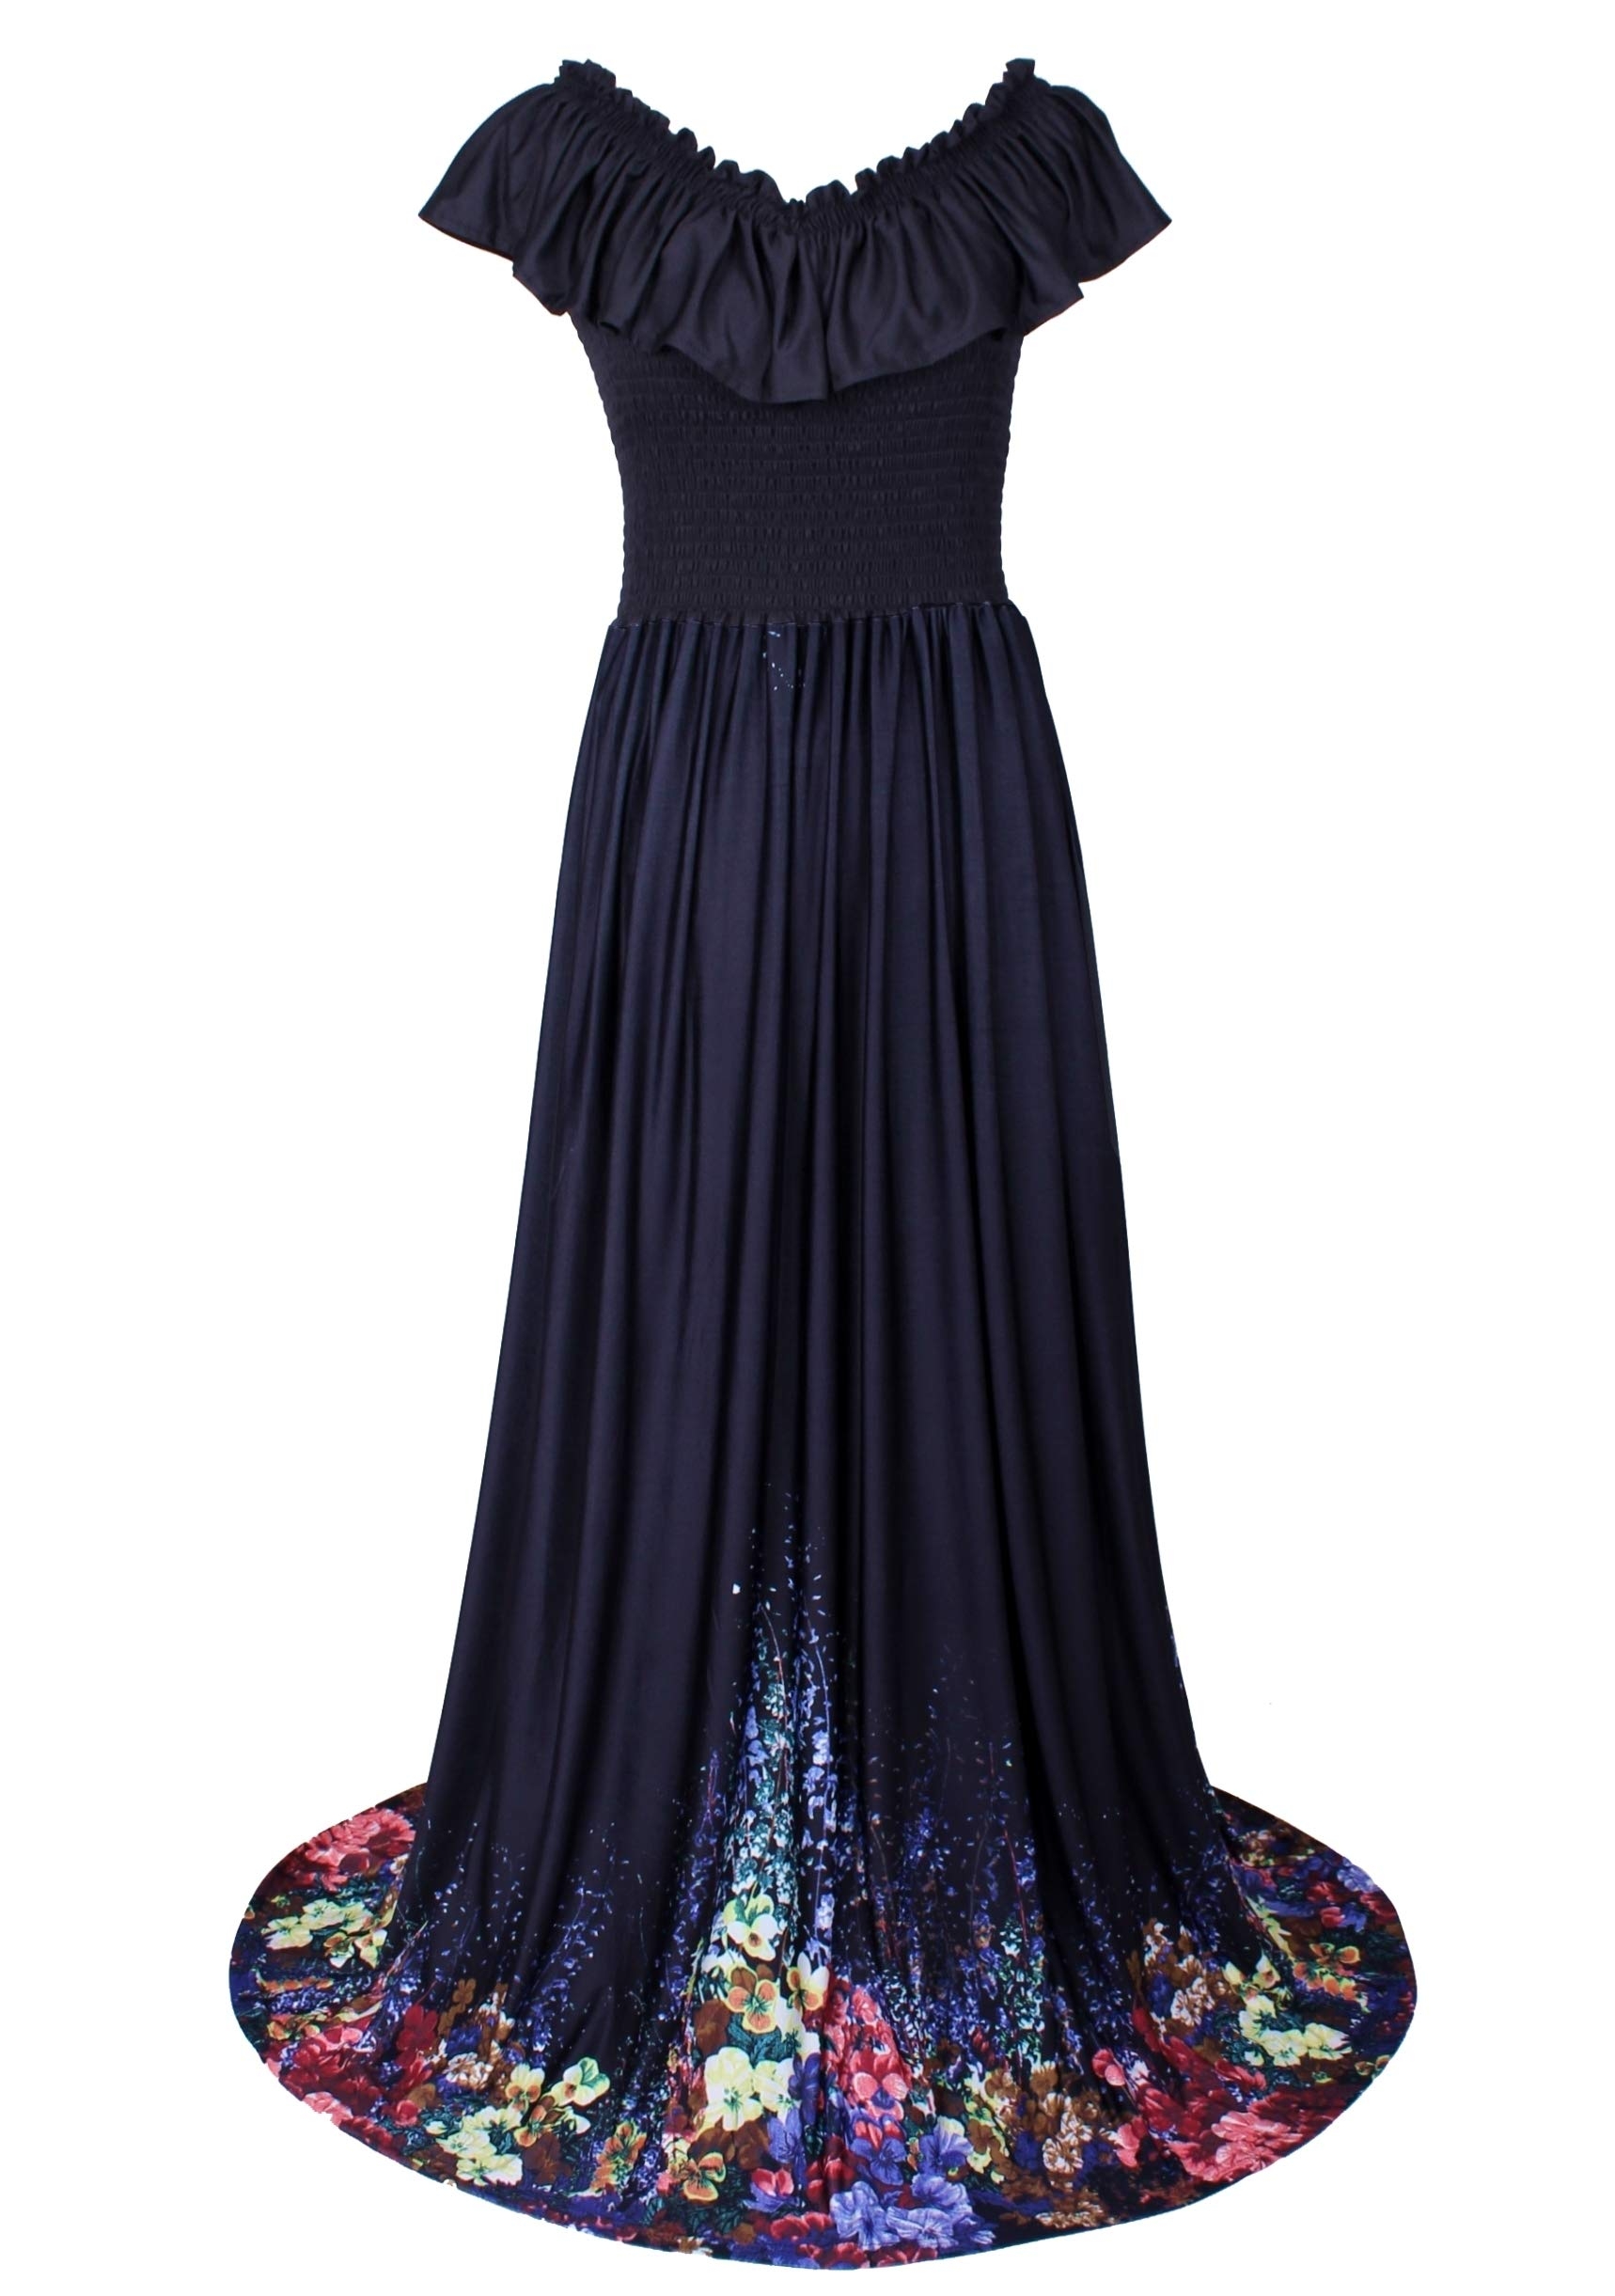 d82267ea01a Maxi Dress for Women Plus Size Casual Short Sleeve Party Cocktail Long Gala  Gown (5X, Black/Floral)